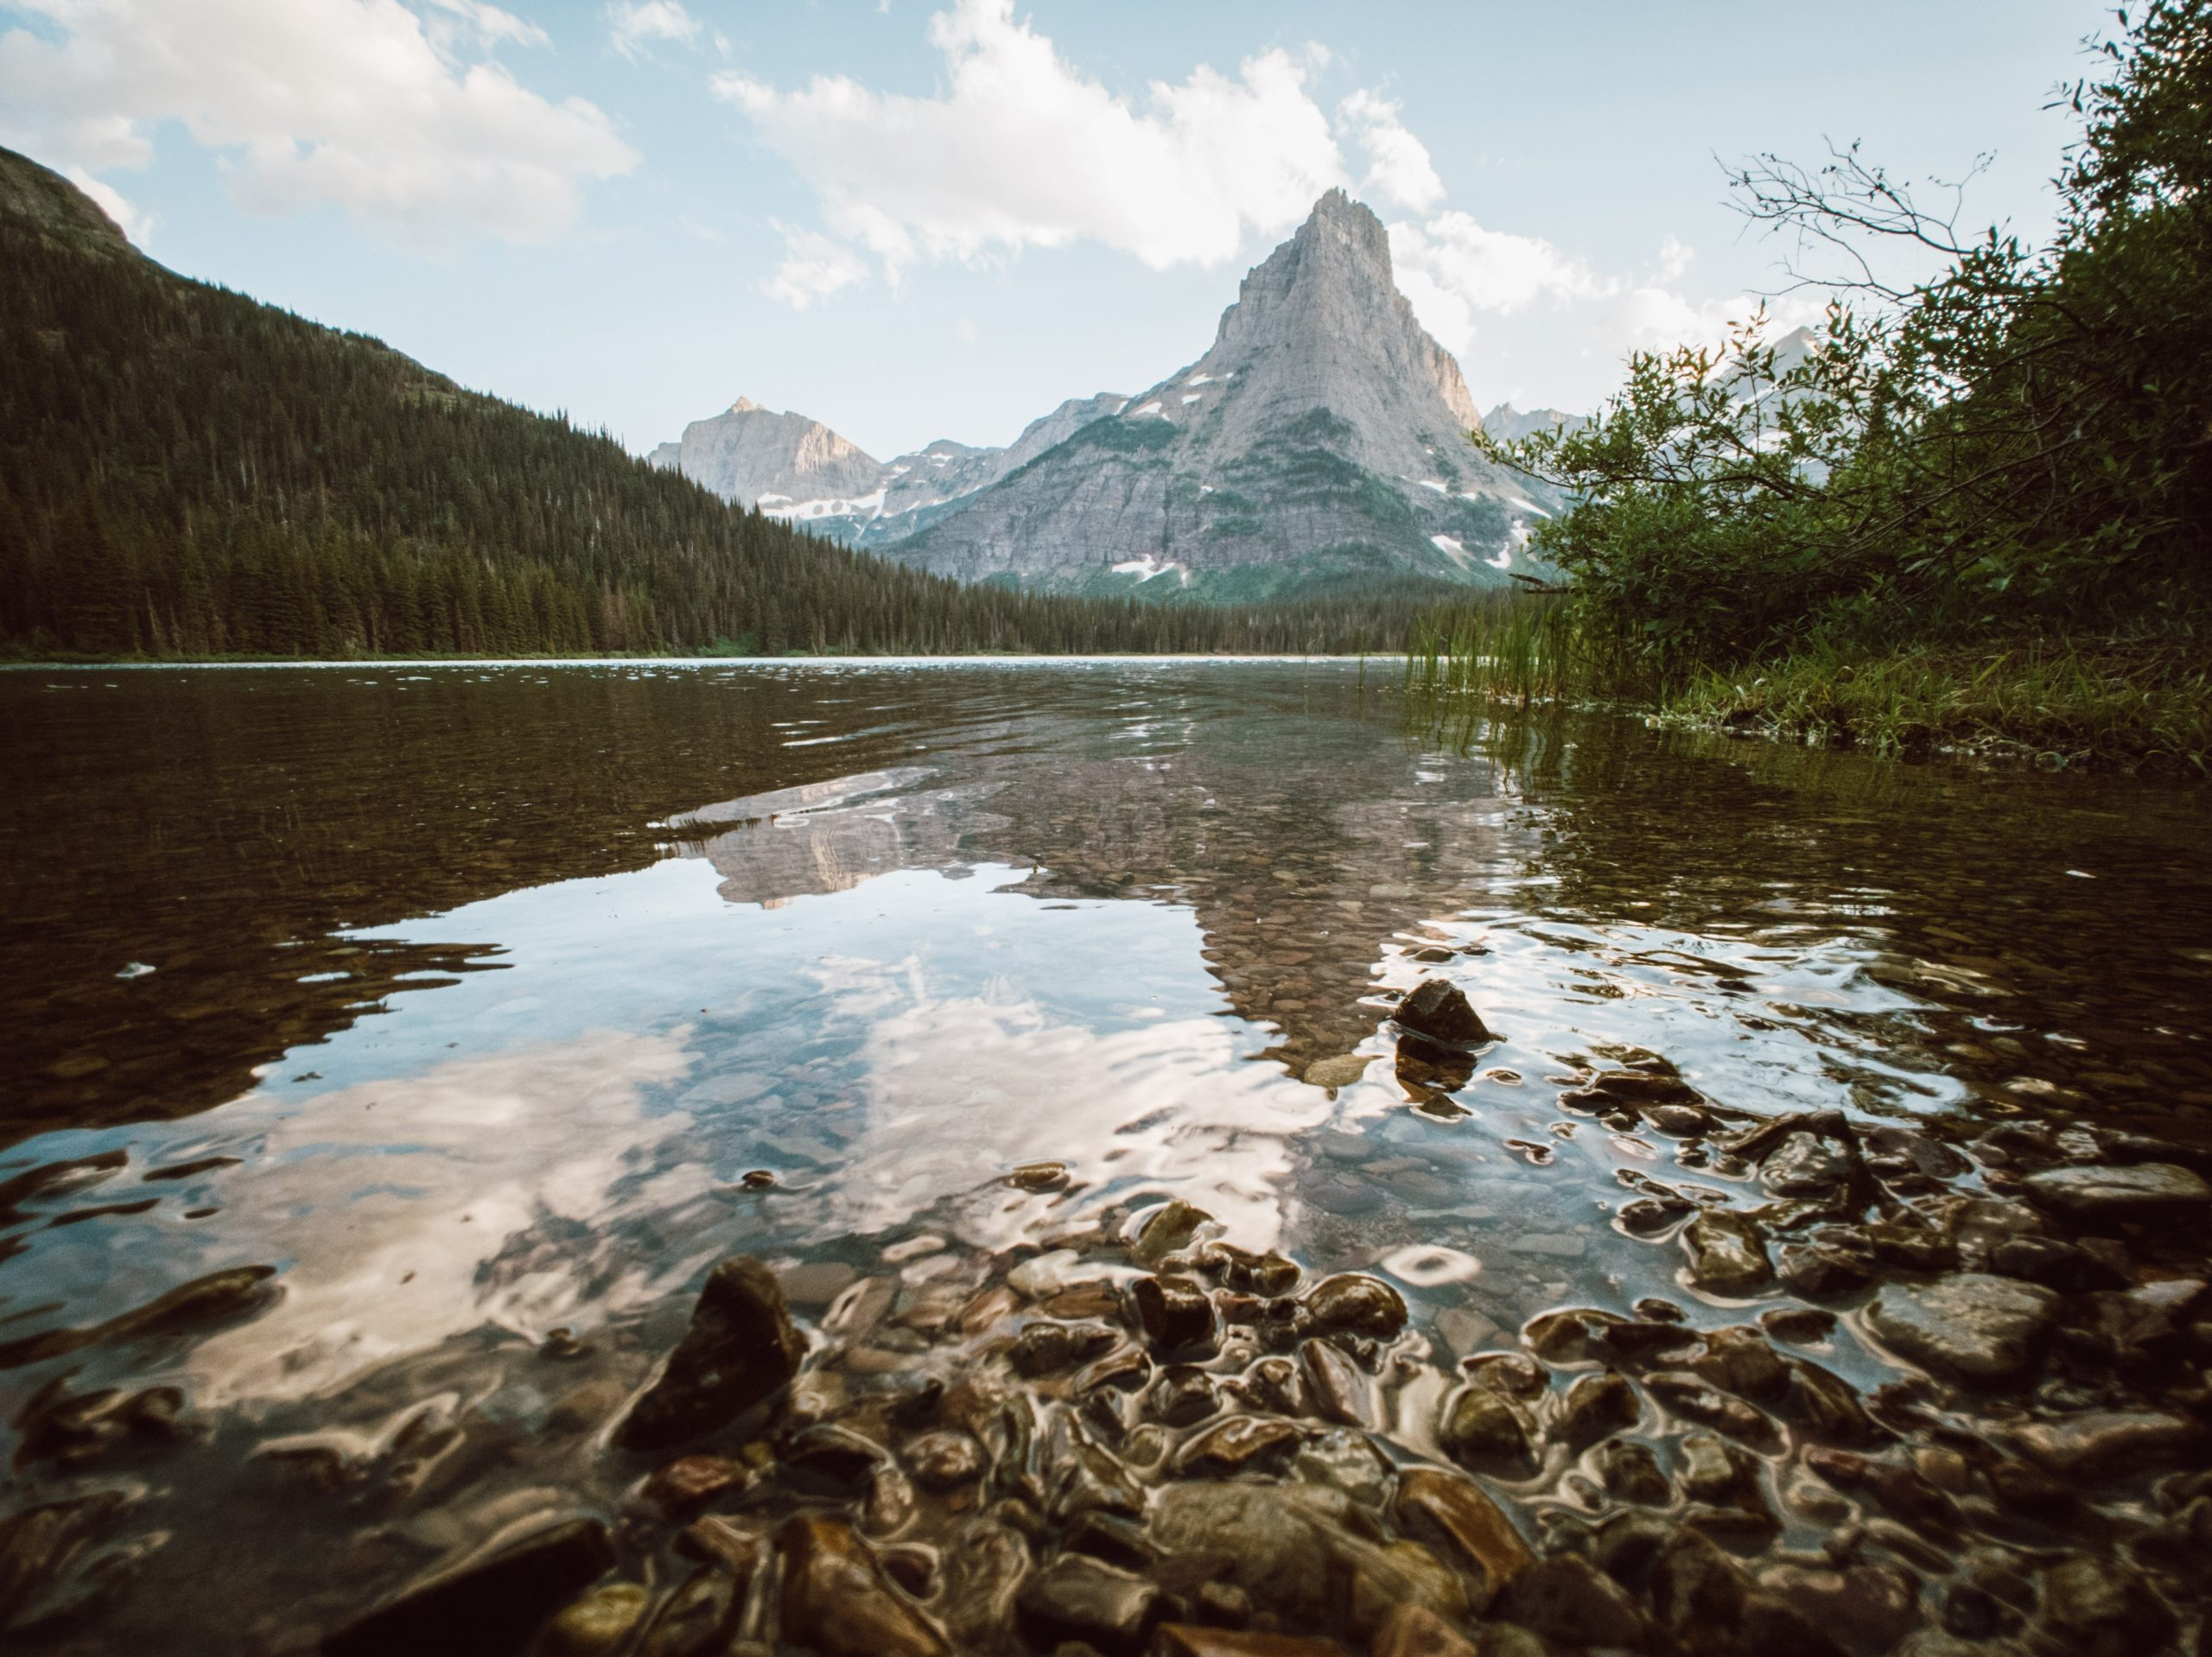 A lake shimmers with the reflection of a pointy mountain peak. There are trees lining the lake and pebbles glistening in the foreground